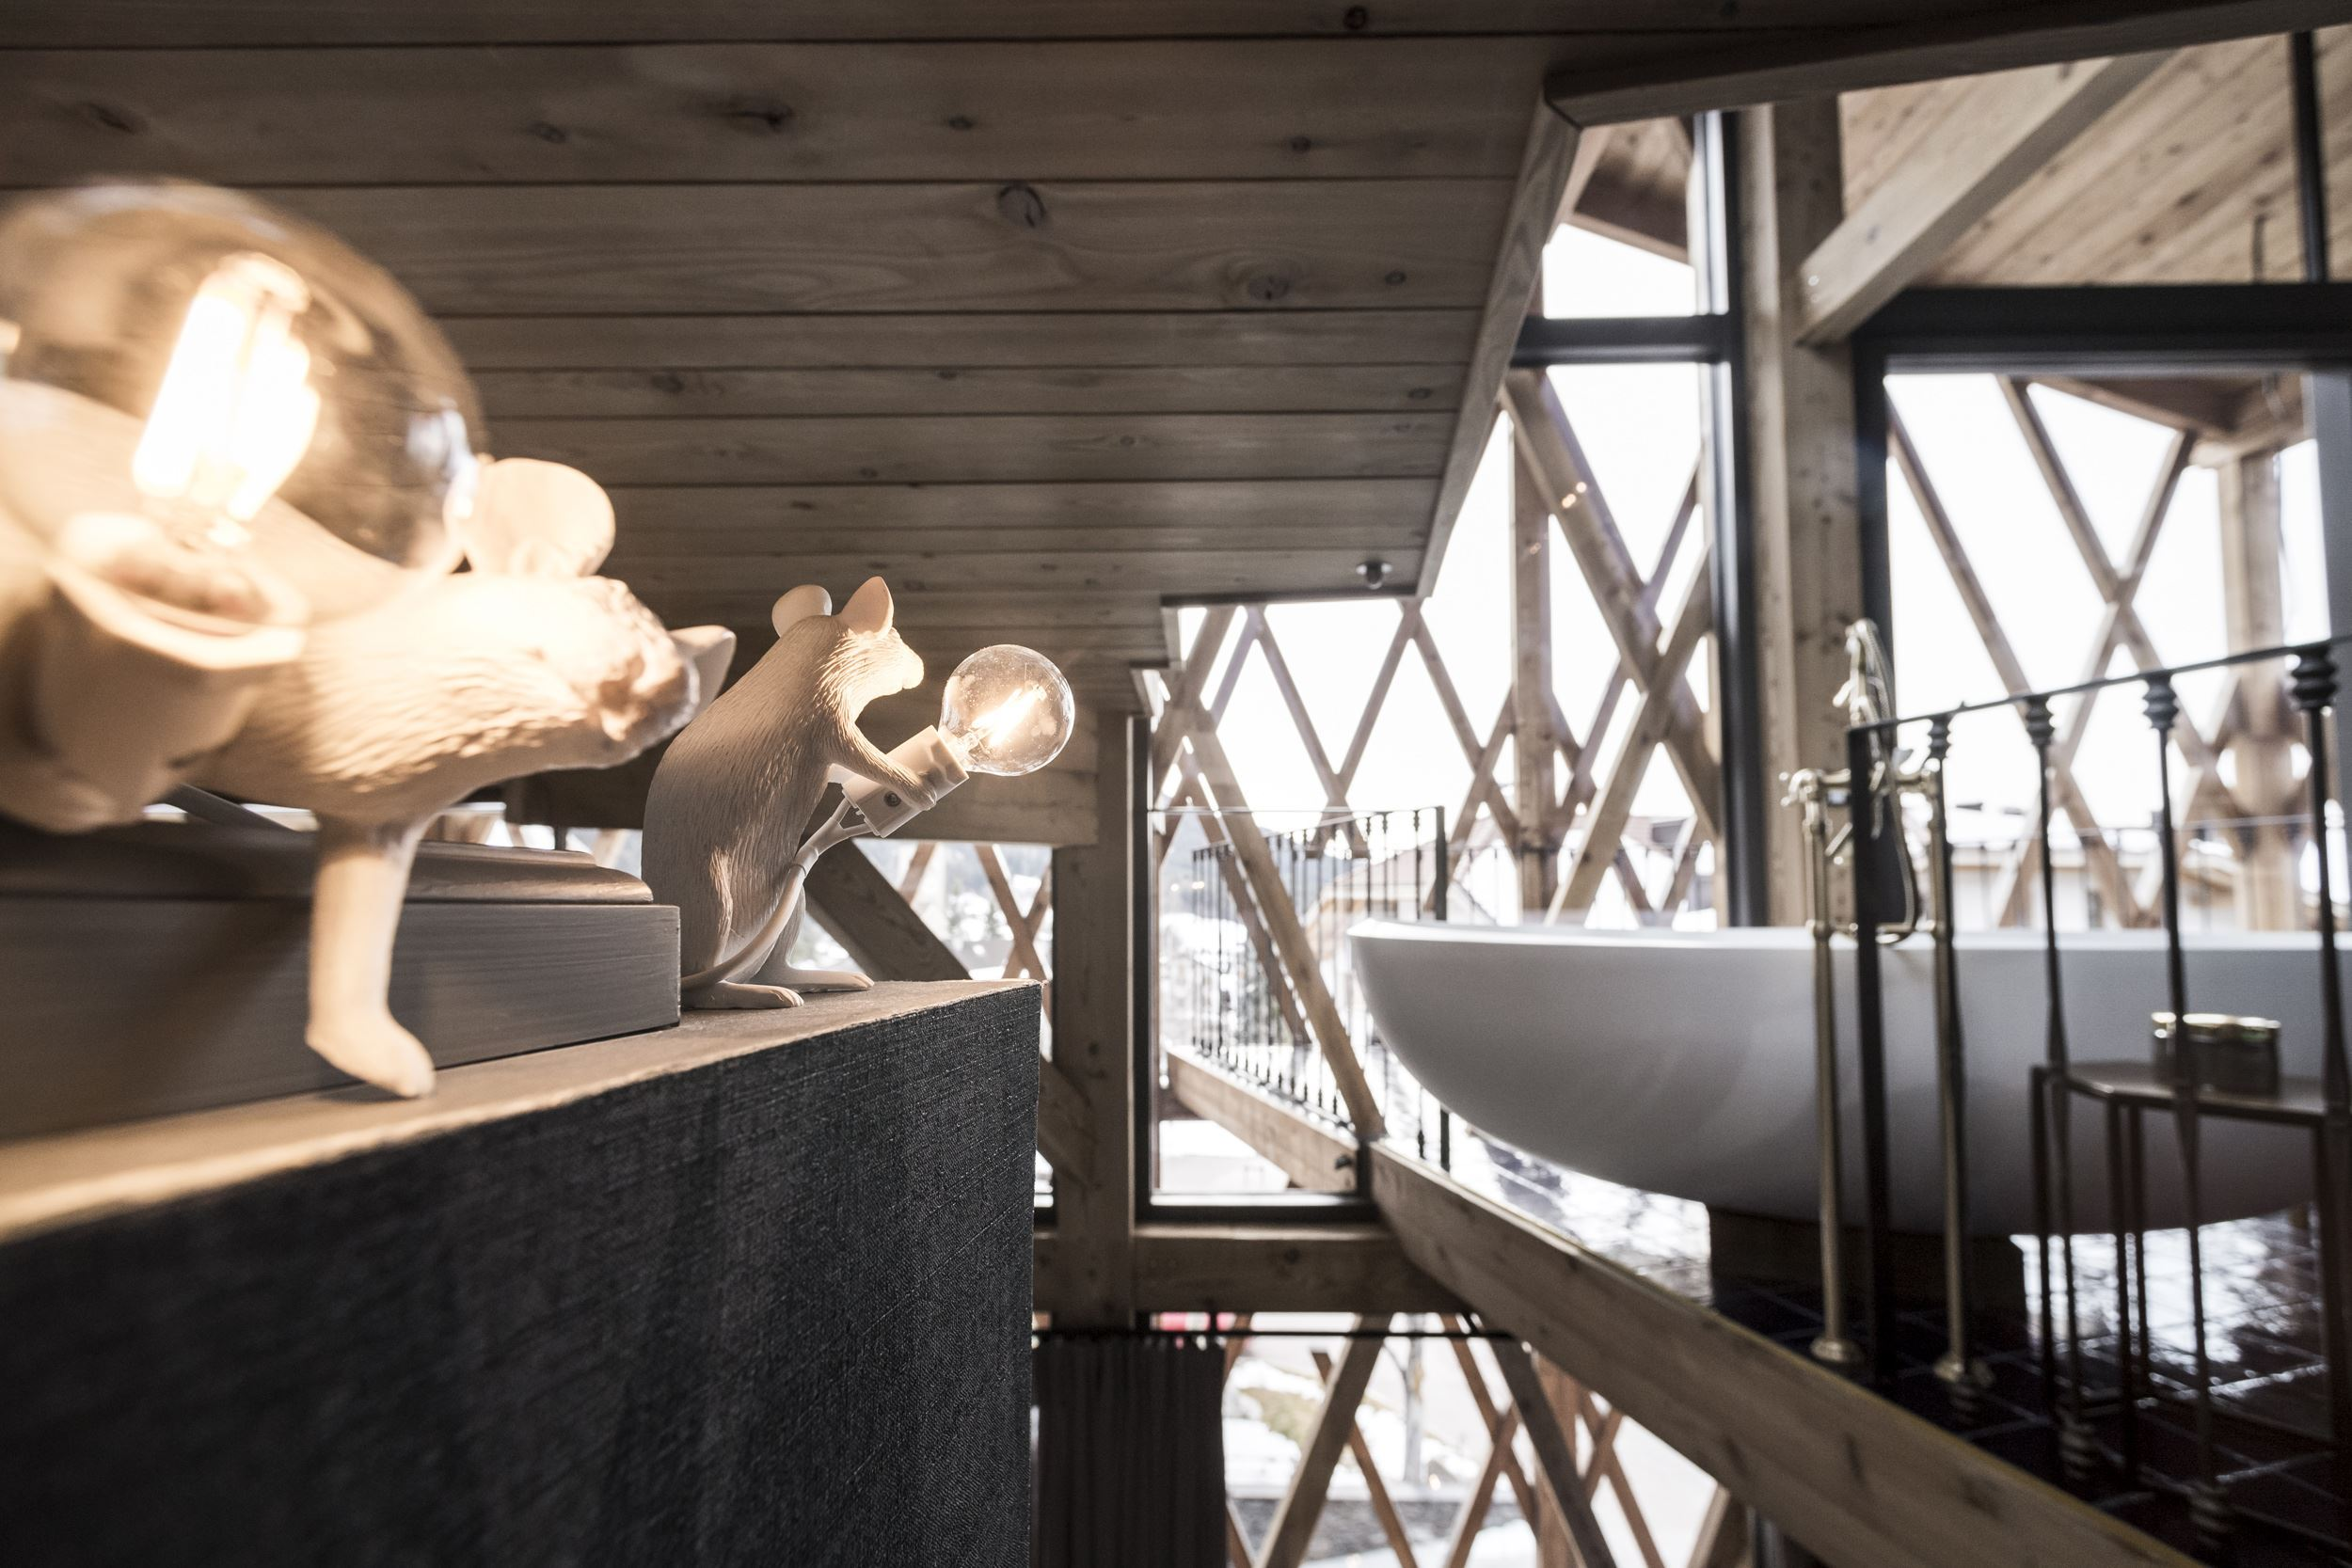 projects | messner | a childhood dream comes true | noa*